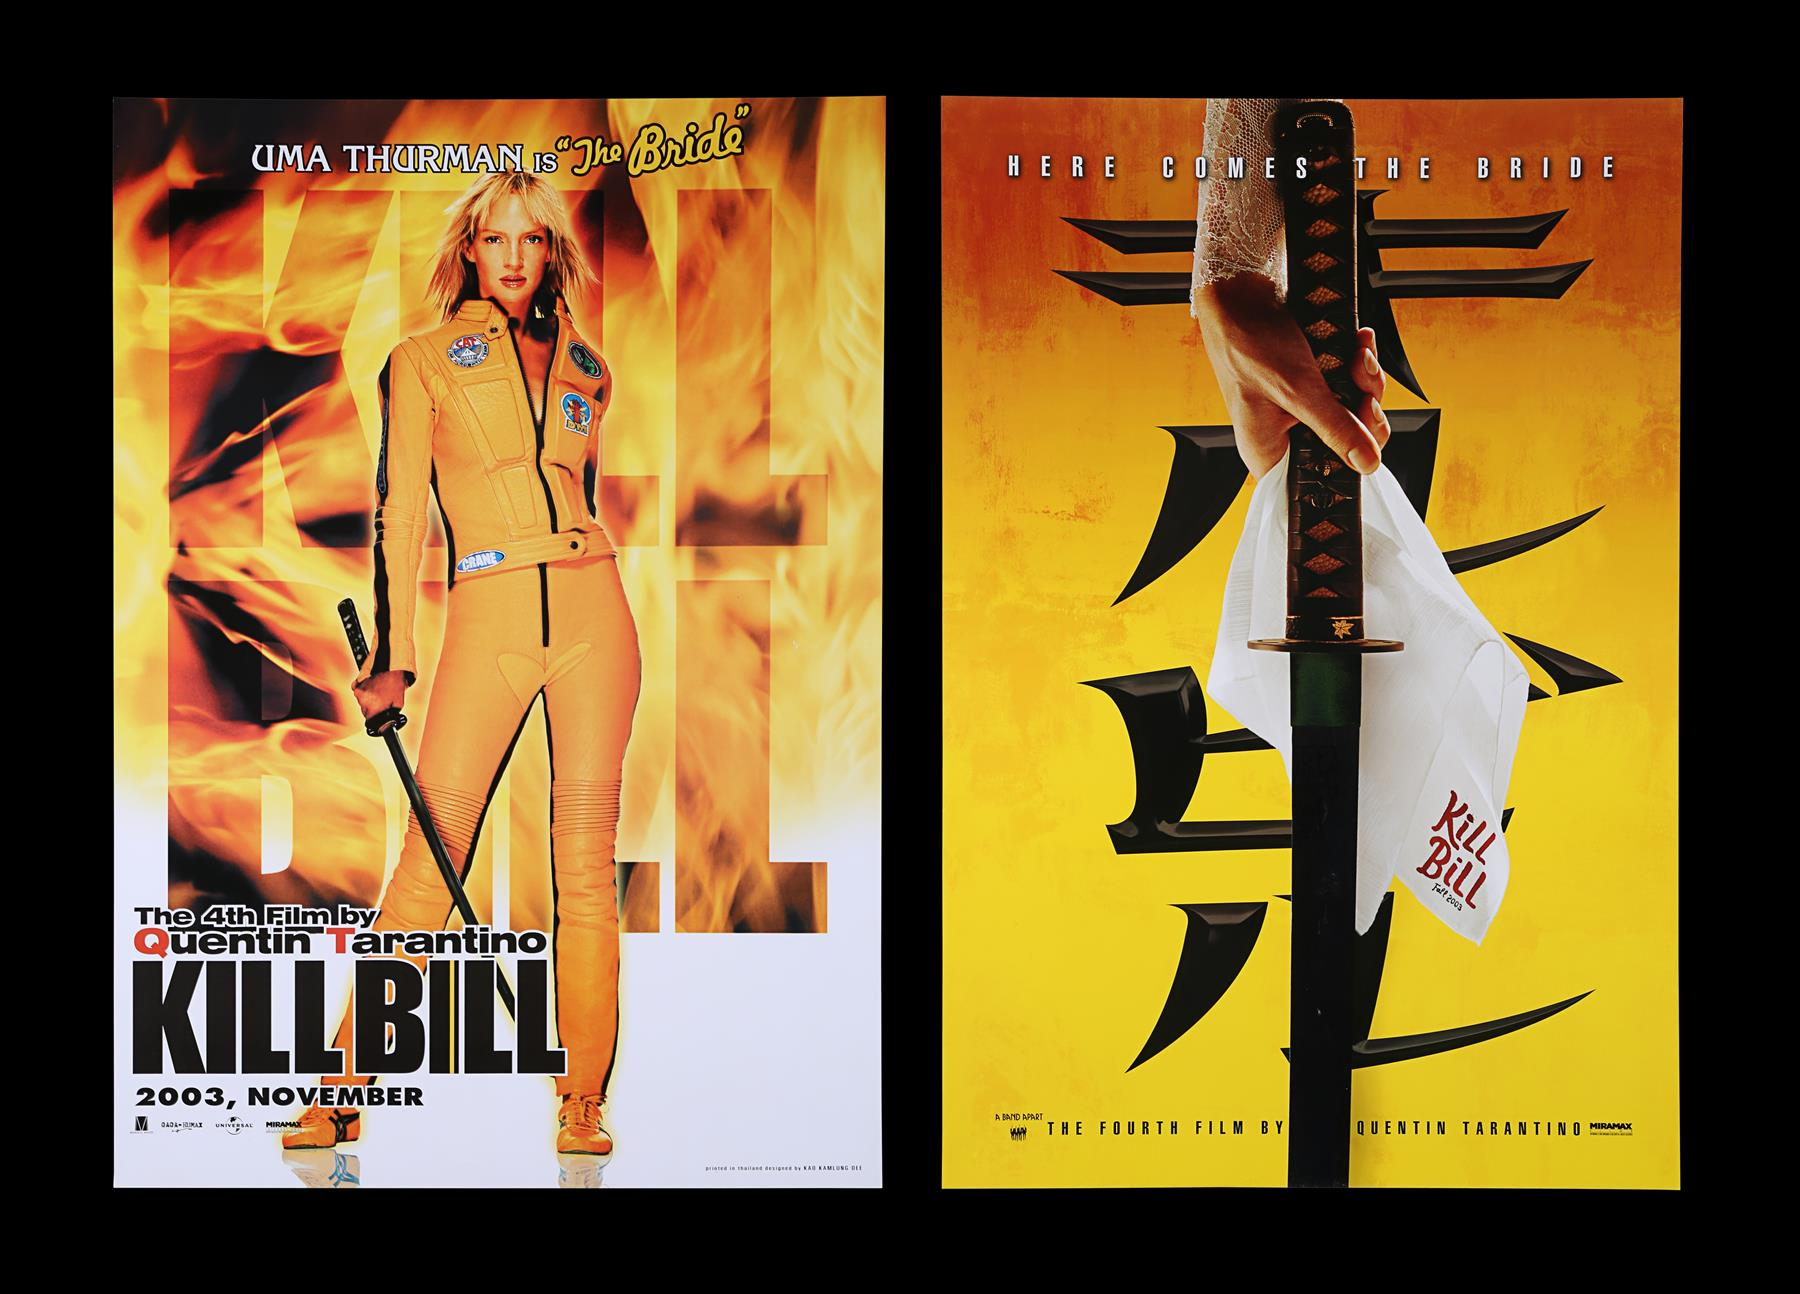 KILL BILL (2003) - US One-Sheet and Thai One-Sheet, 2003